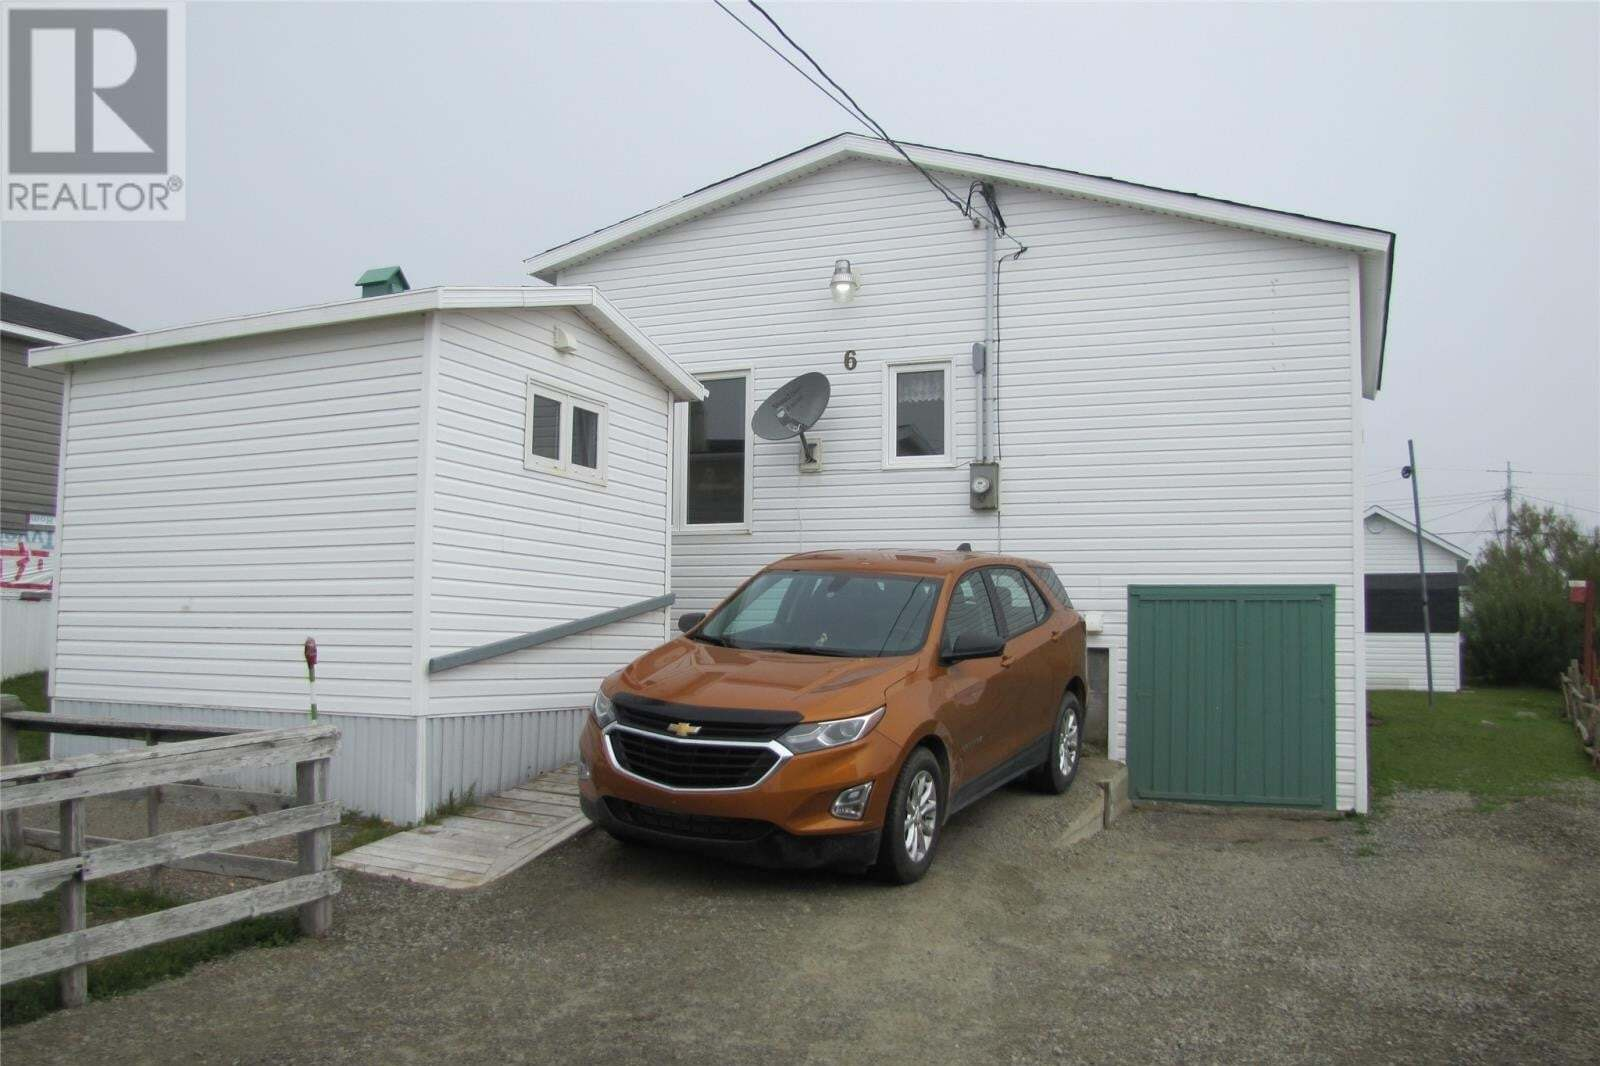 House for sale at 6 Gale St Port Aux Basques Newfoundland - MLS: 1221877